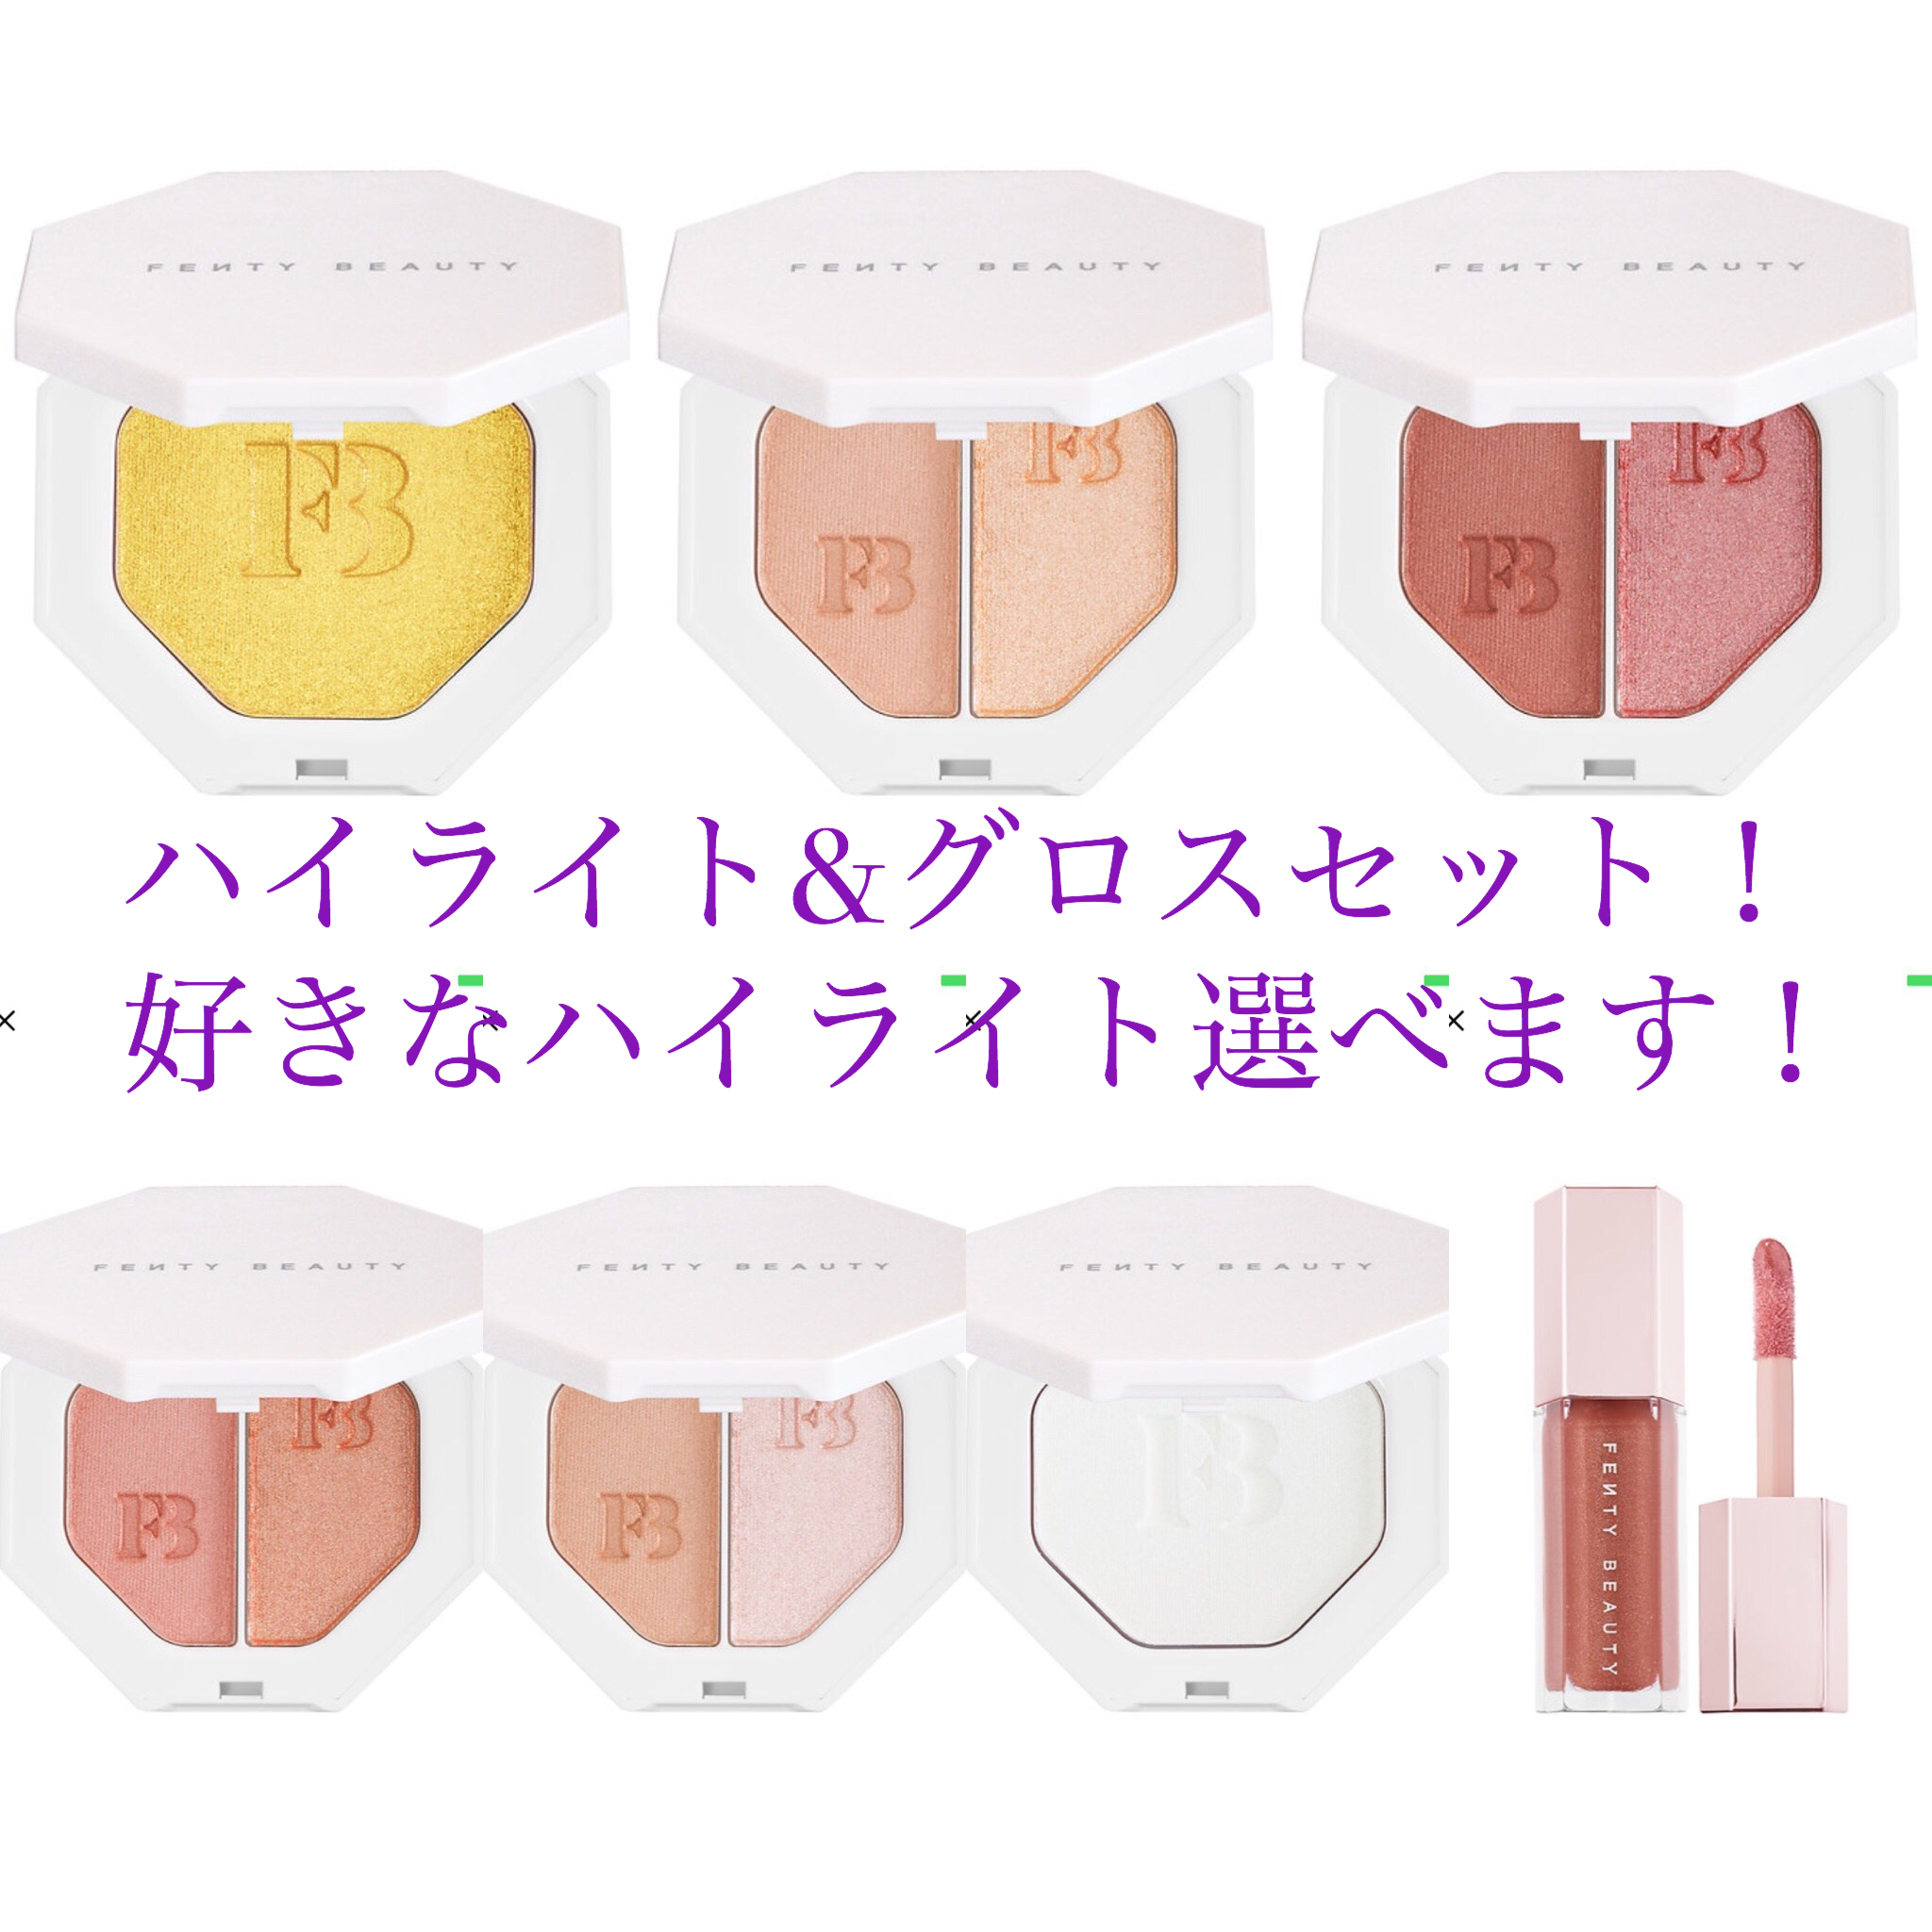 FENTY BEAUTY チークORハイライト グロスセット